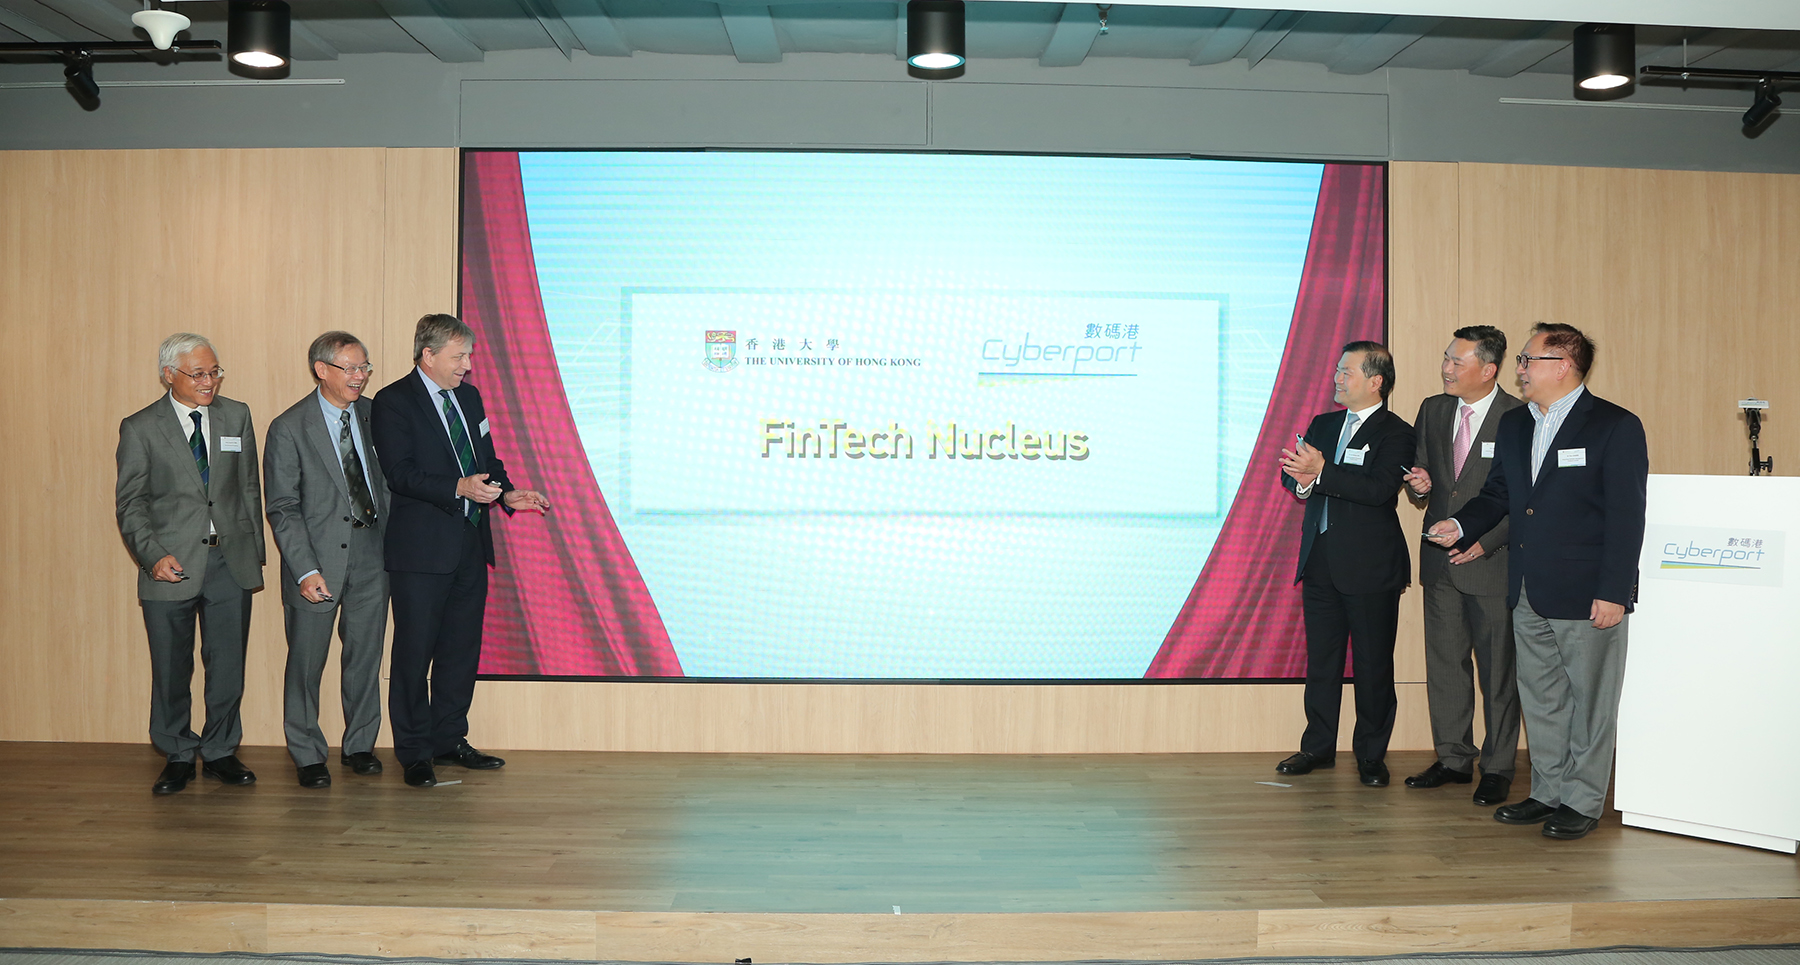 "The opening of the ""HKU x Cyberport FinTech Nucleus"" is the first step to introducing more creativity and innovation to the Cyberport Centre of Global FinTech Innovation. (From left) Professor Paul Tam, Provost and Deputy Vice-Chancellor, HKU ; Professor Andy Hor, Vice-President and Pro-Vice-Chancellor (Research), HKU; Professor Peter Mathieson, President and Vice-Chancellor, HKU; Dr Lee George Lam, Chairman, Cyberport; Mr Herman Lam, Chief Executive Officer, Cyberport; Dr Toa Charm Ka-Ieong, Chief Public Mission Officer, Cyberport"